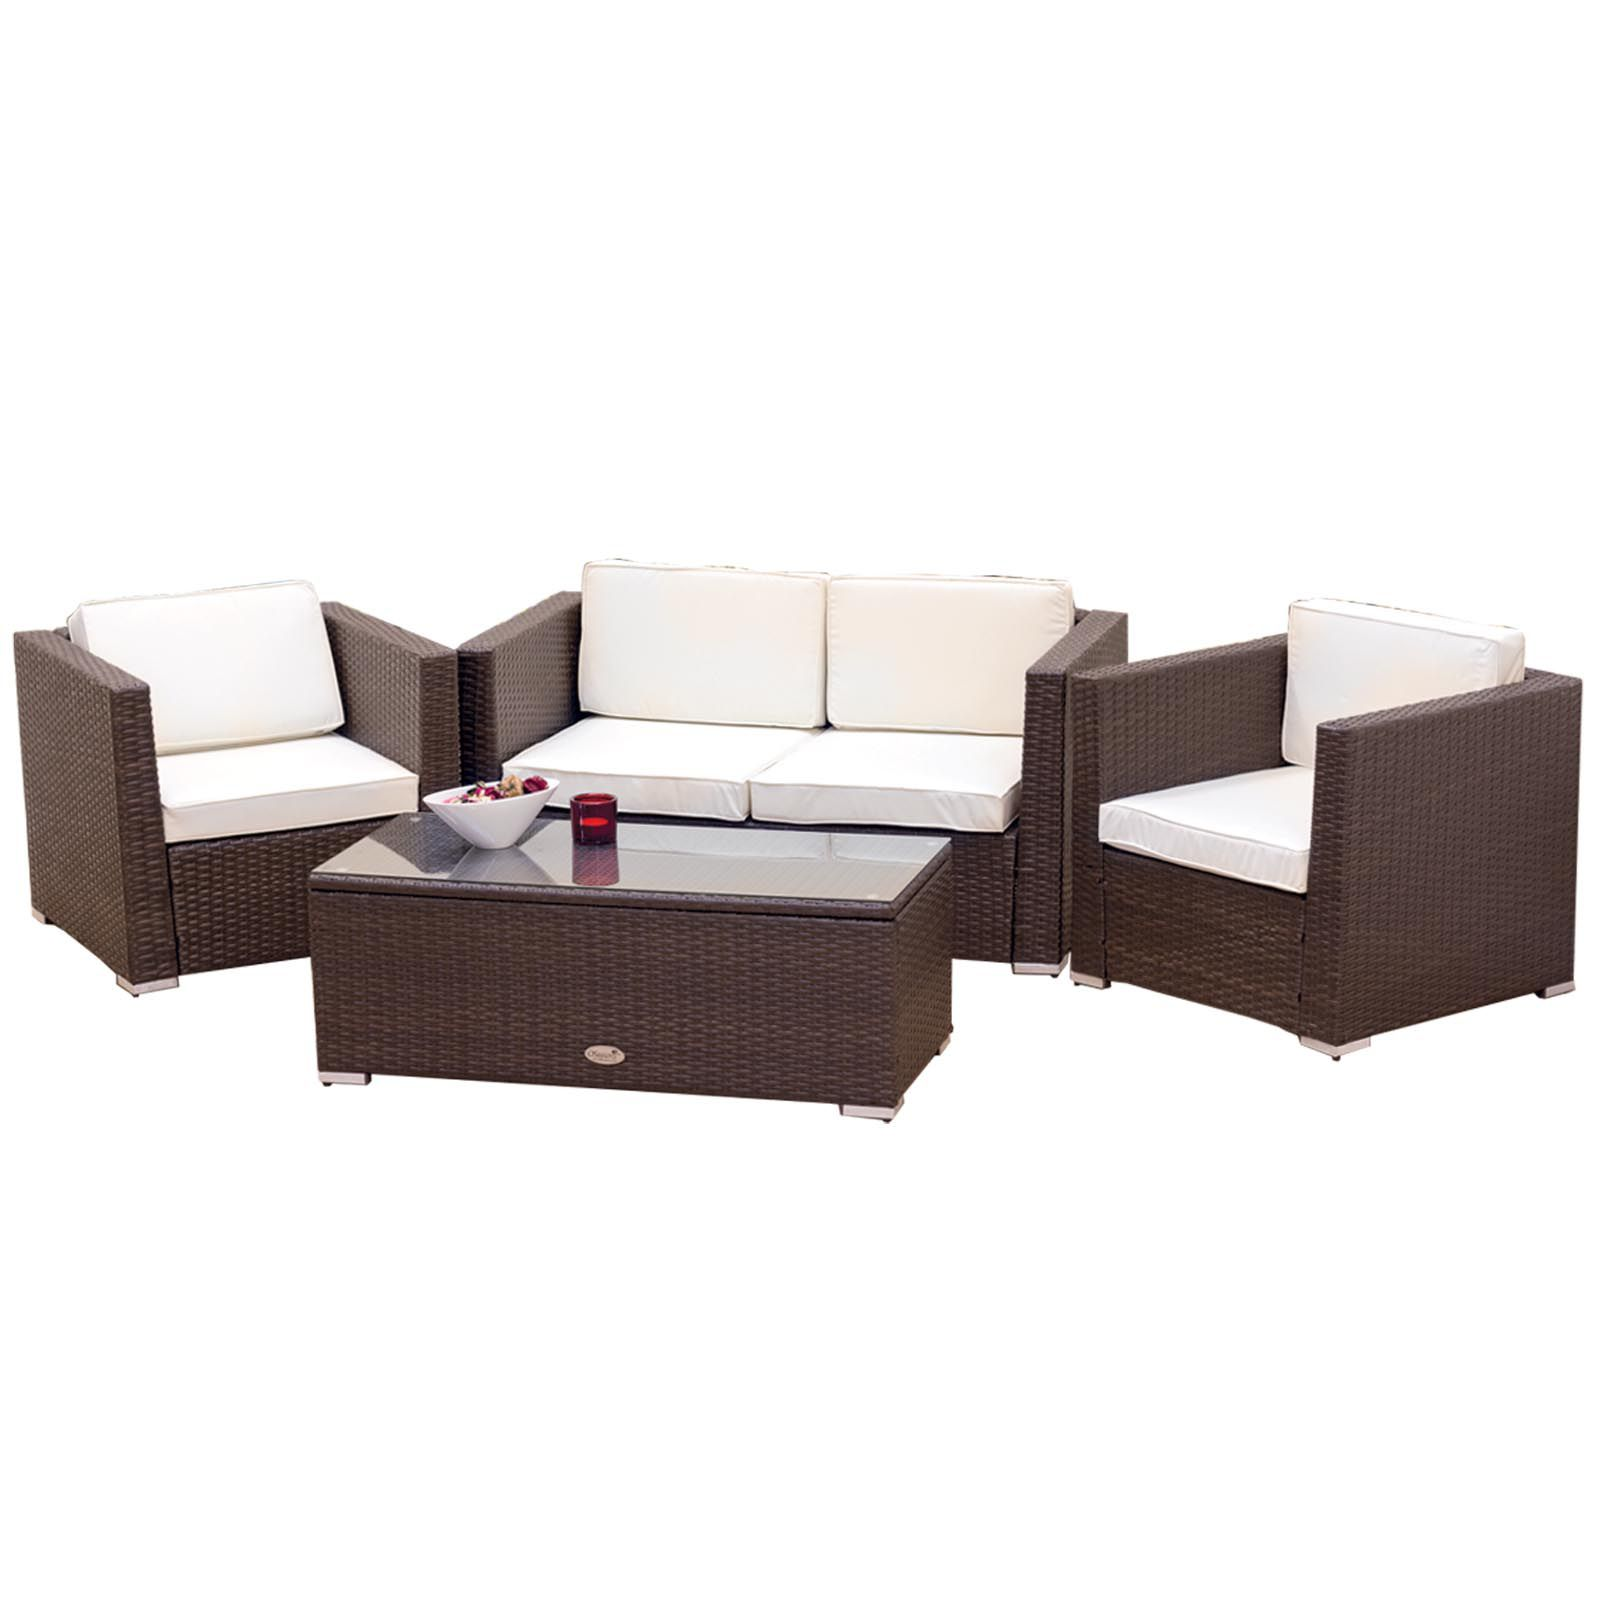 oxford 4 piece brown rattan effect sofa set j shaped oseasons furniture house of fraser